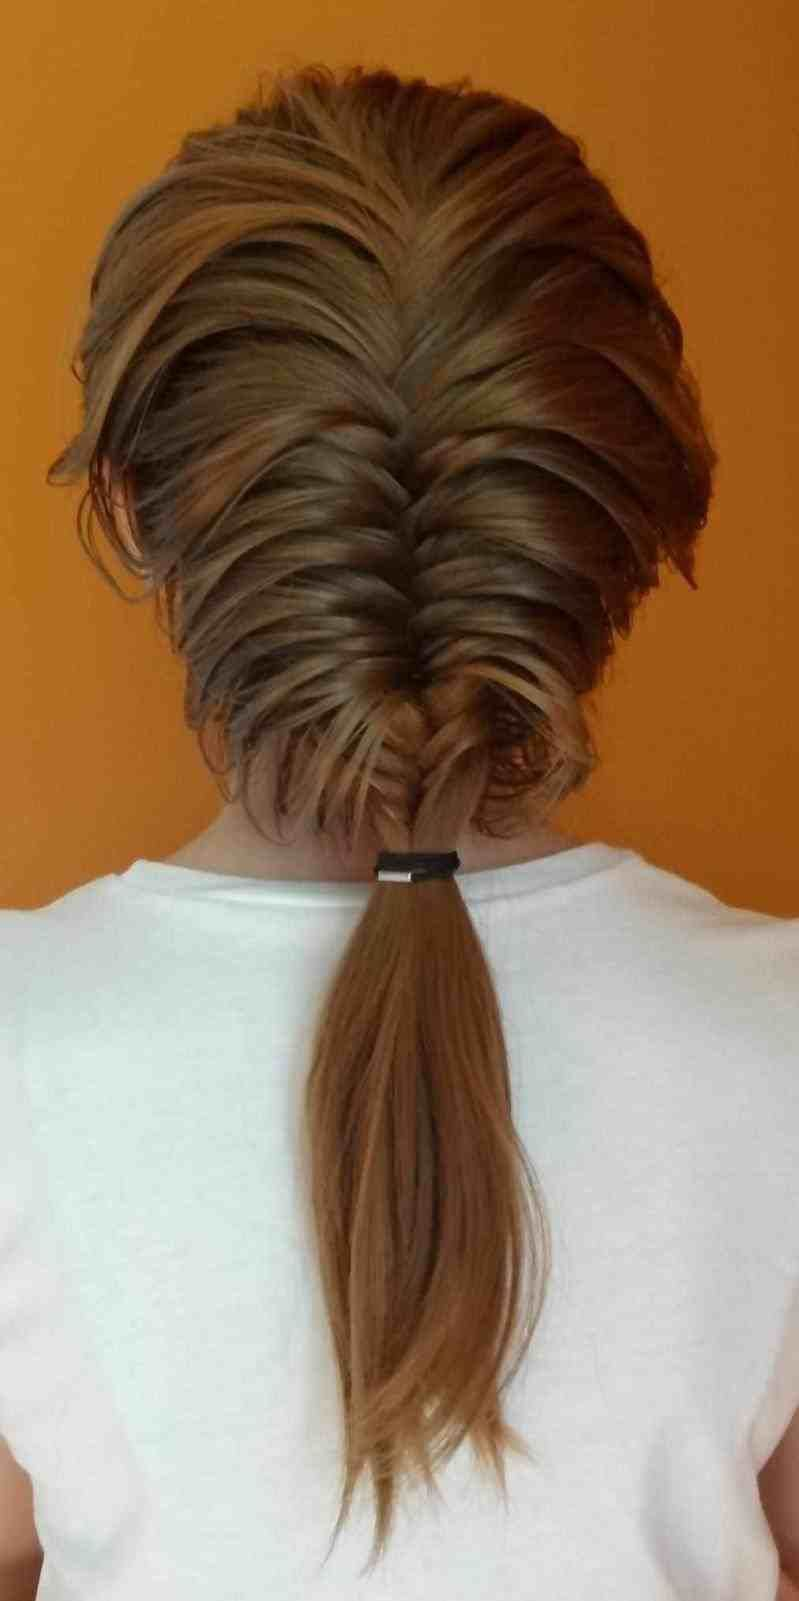 Braid Hairstyles Tumblr Hairstyles For Long Hair Tumblr Viking Hairstyle  Viking Braid Hairstyles Tumblr Hairstyle Tumblr